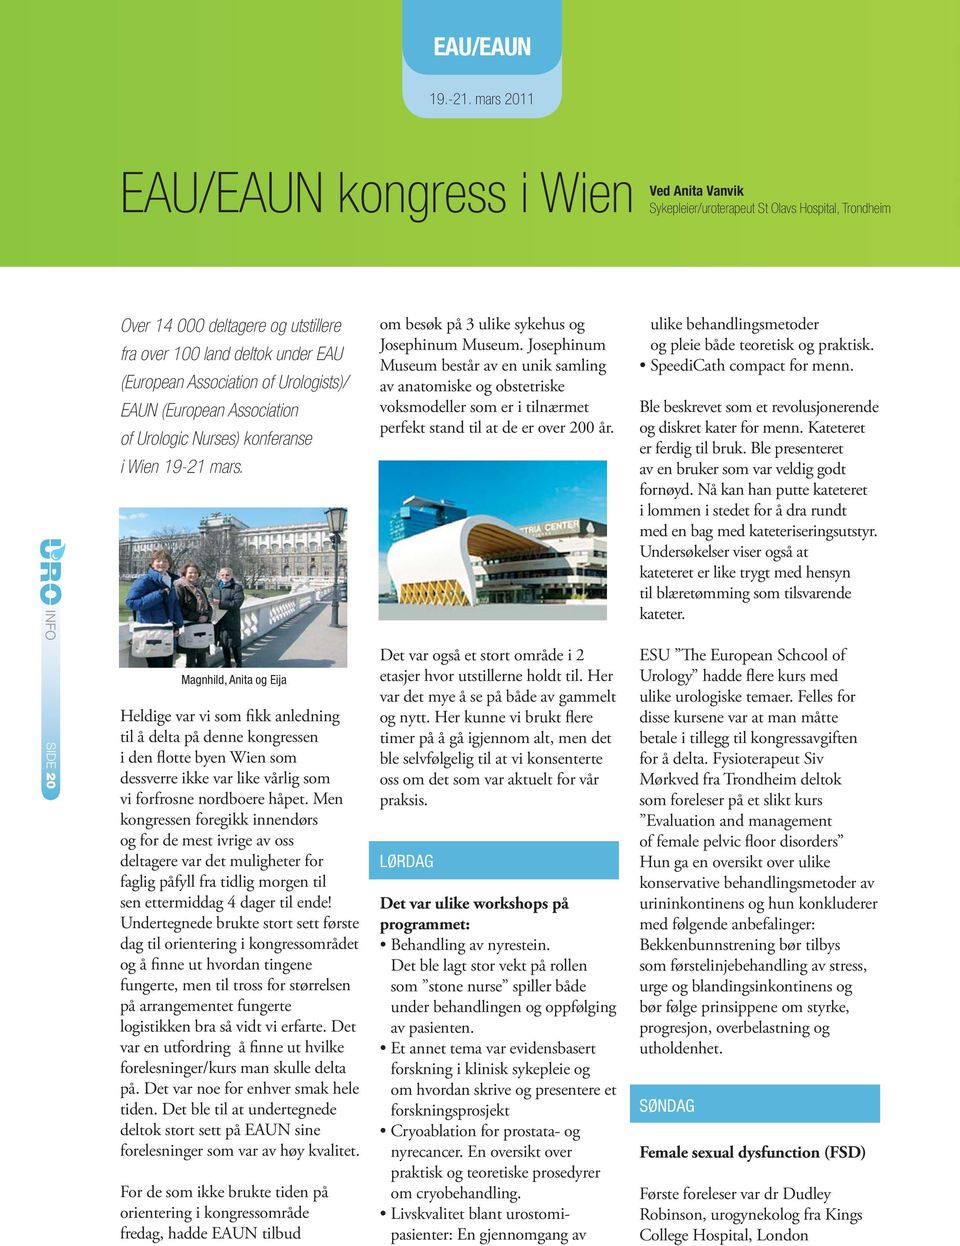 Urologists)/ EAUN (European Association of Urologic Nurses) konferanse i Wien 19-21 mars. om besøk på 3 ulike sykehus og Josephinum Museum.